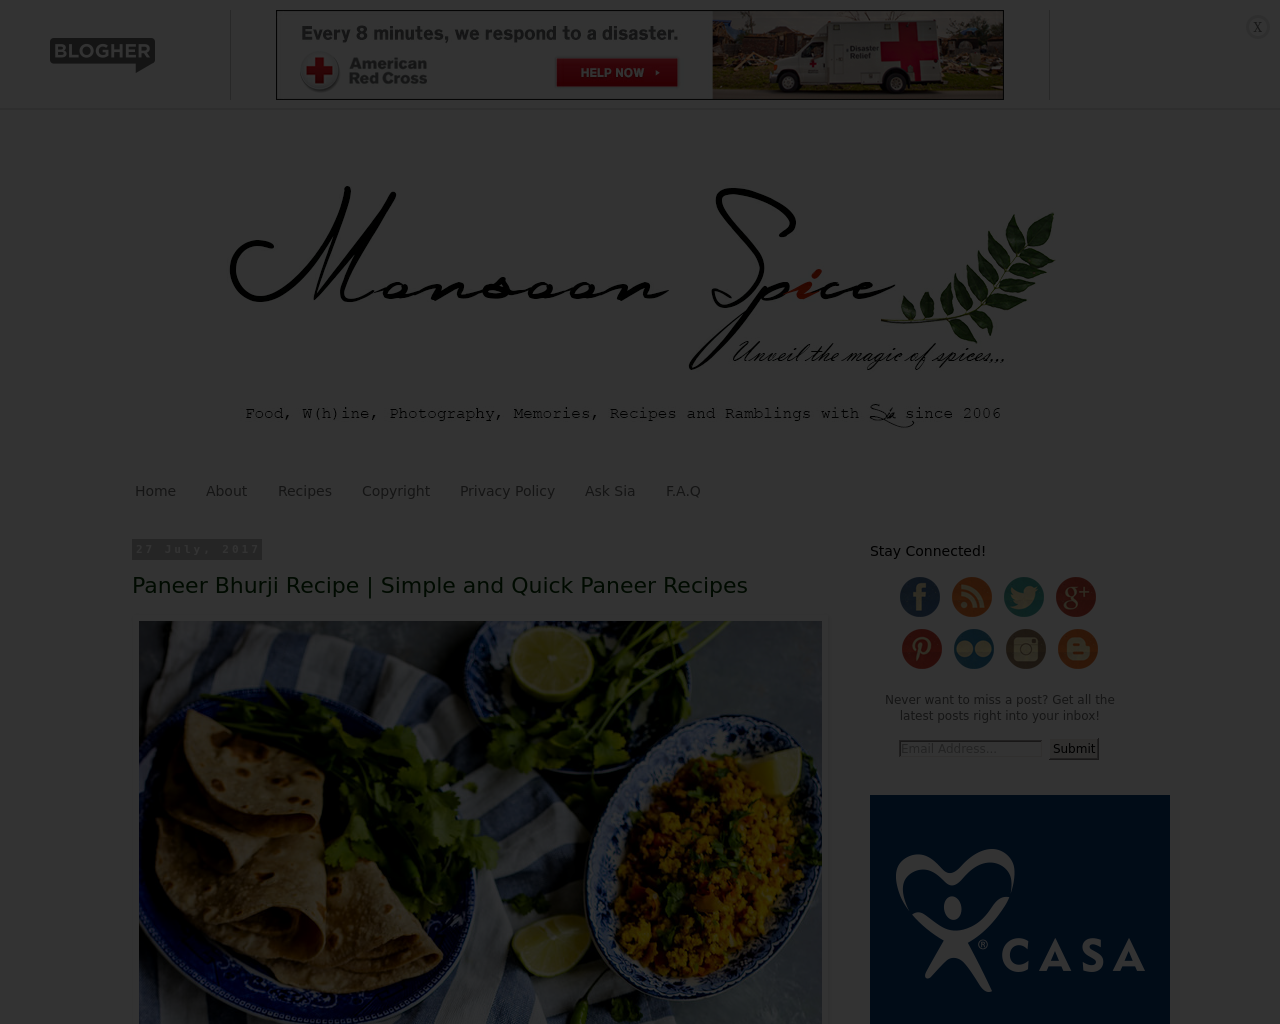 Monsoon-Spice-Advertising-Reviews-Pricing